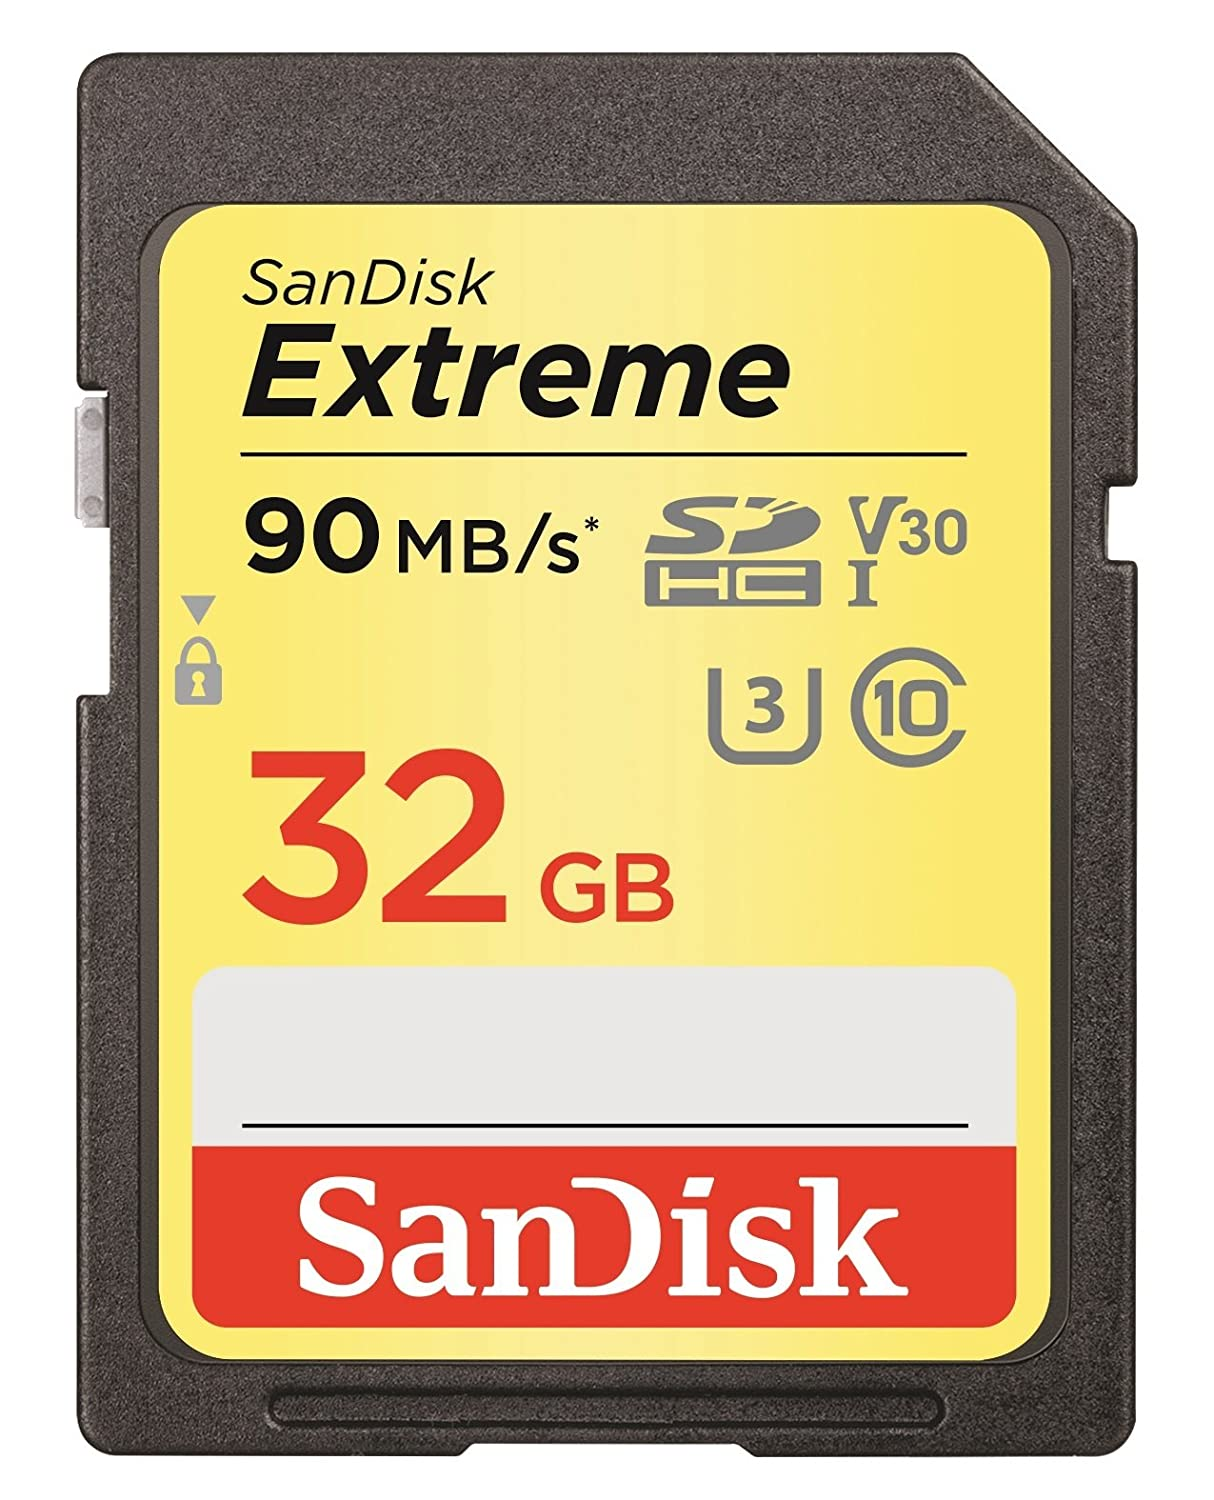 SanDisk Extreme 32GB 90 Mb/s SDHC UHS-I Card (SDSDXVE-032G-GNCIN) [Newest Version]